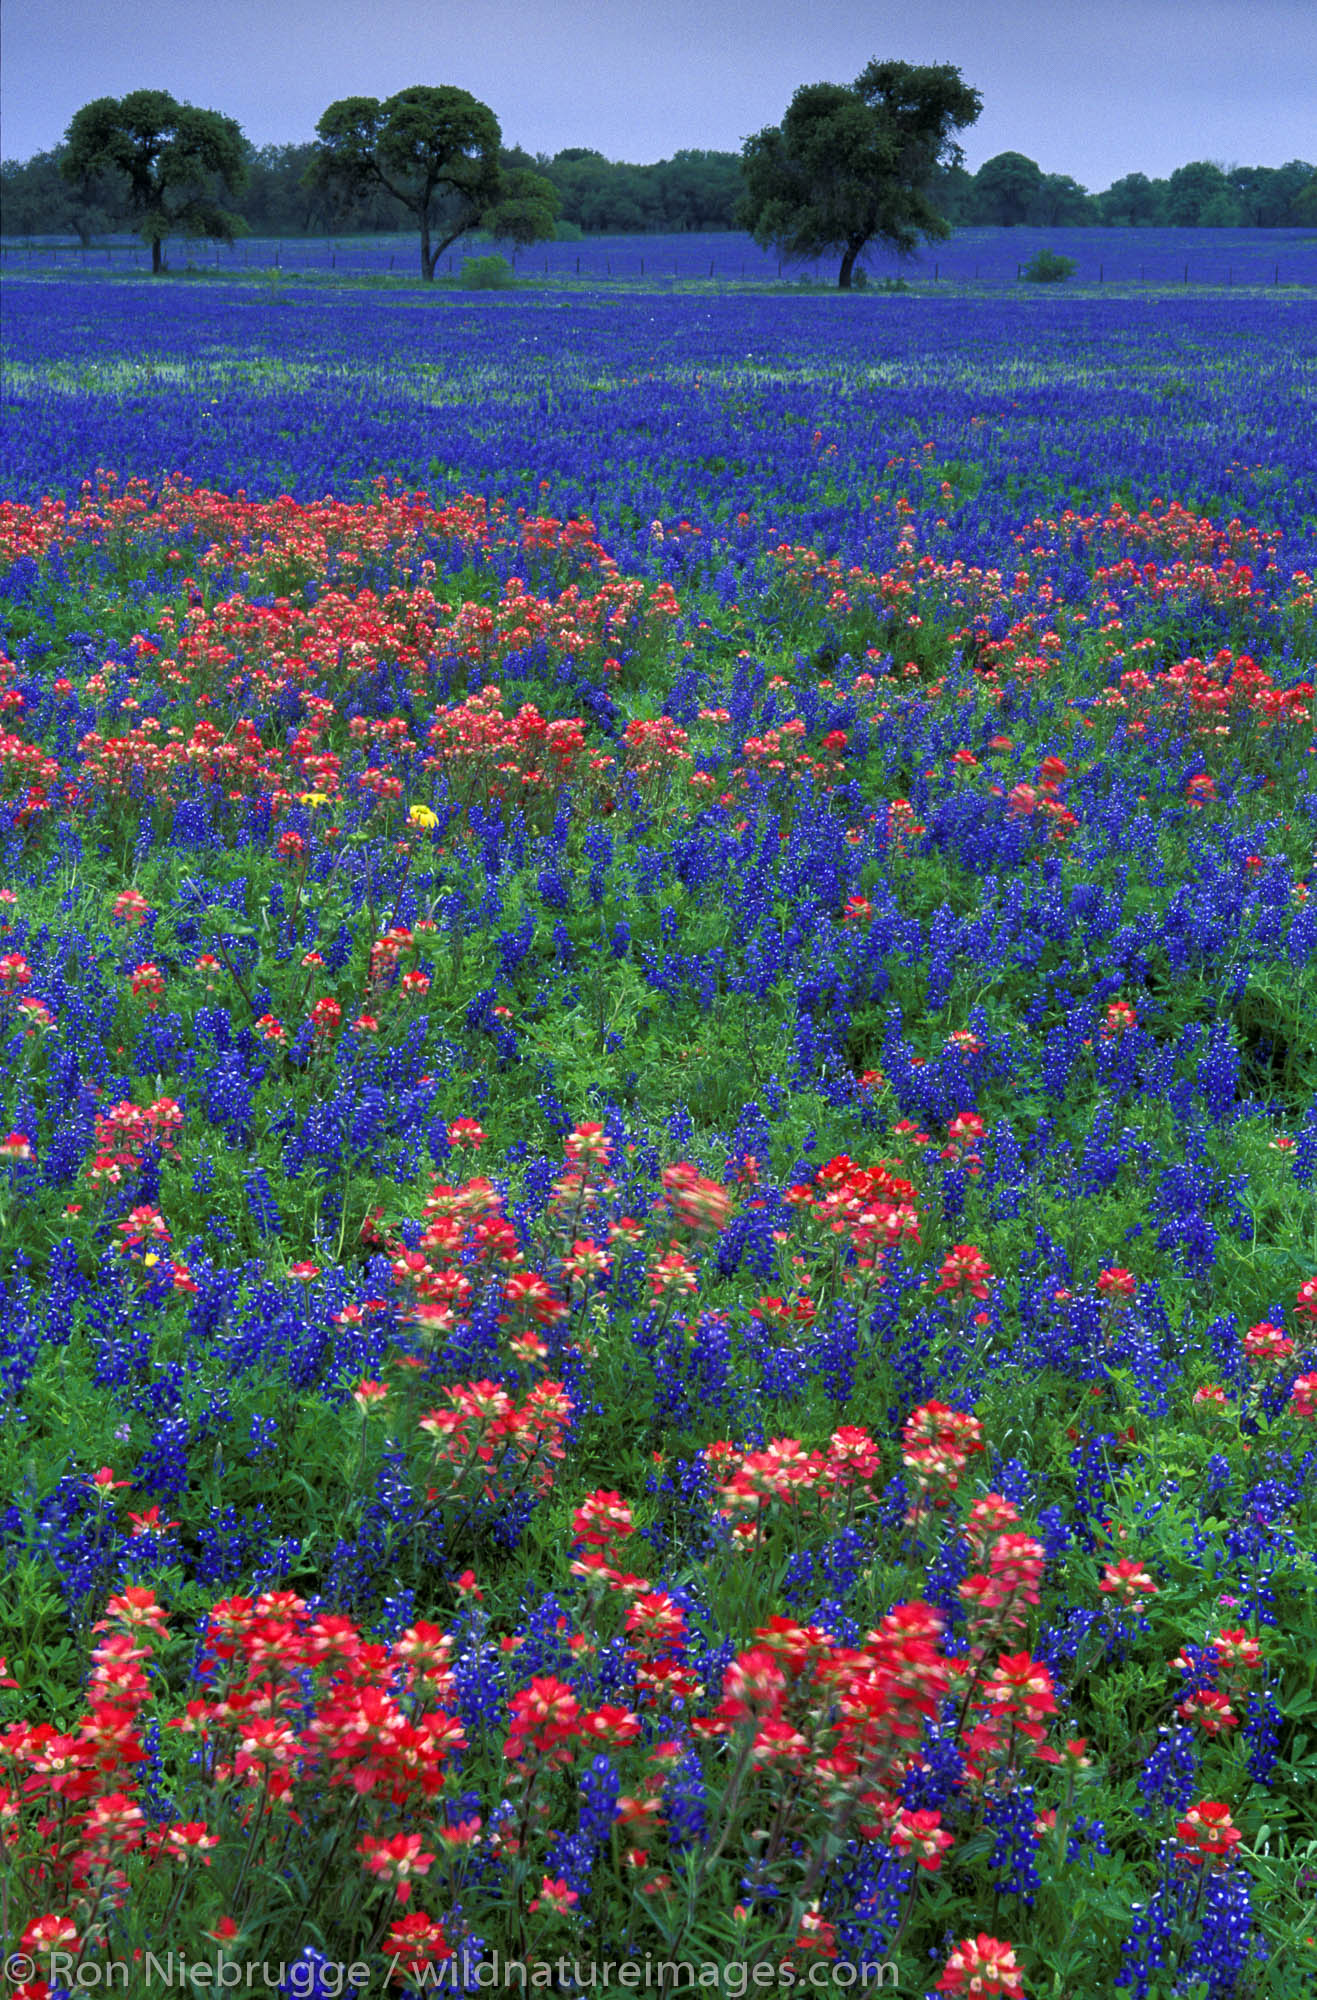 Field of Indian Paintbrush and Bluebonnet, Central Texas.